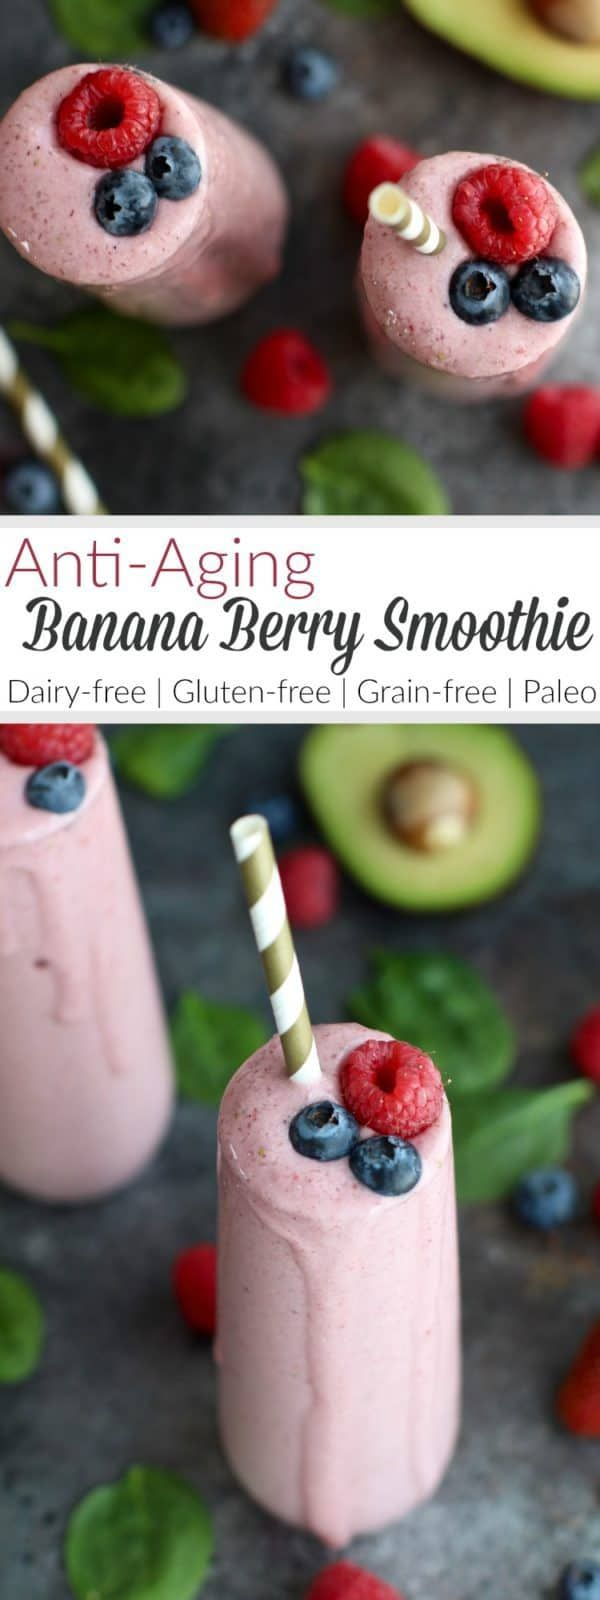 Anti-Aging Banana Berry Smoothie #dairyfreesmoothie